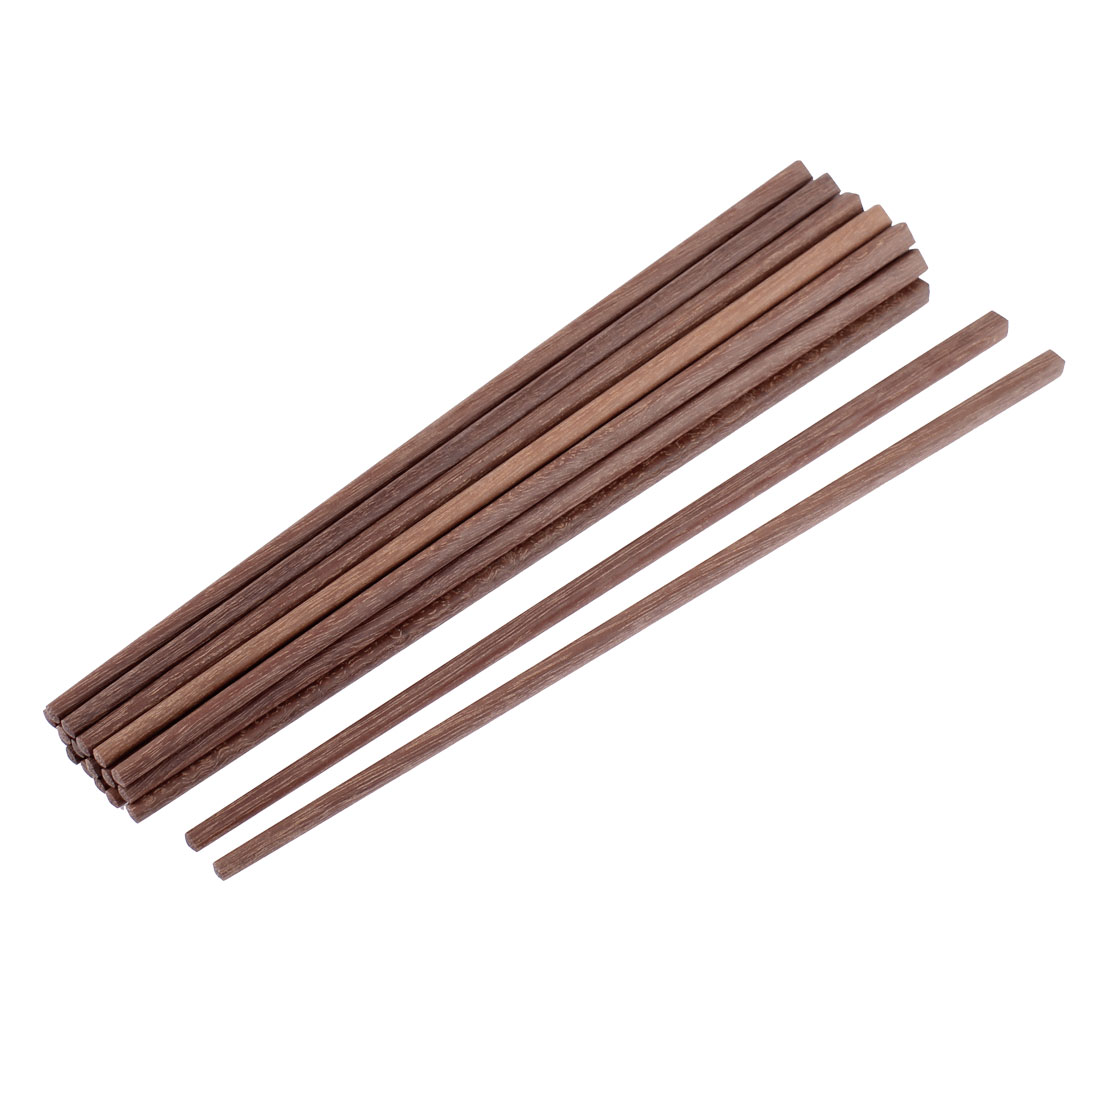 "Kitchen Chinese Eco-friendly Wooden Chopsticks 10"" Length Brown 10 Pairs"